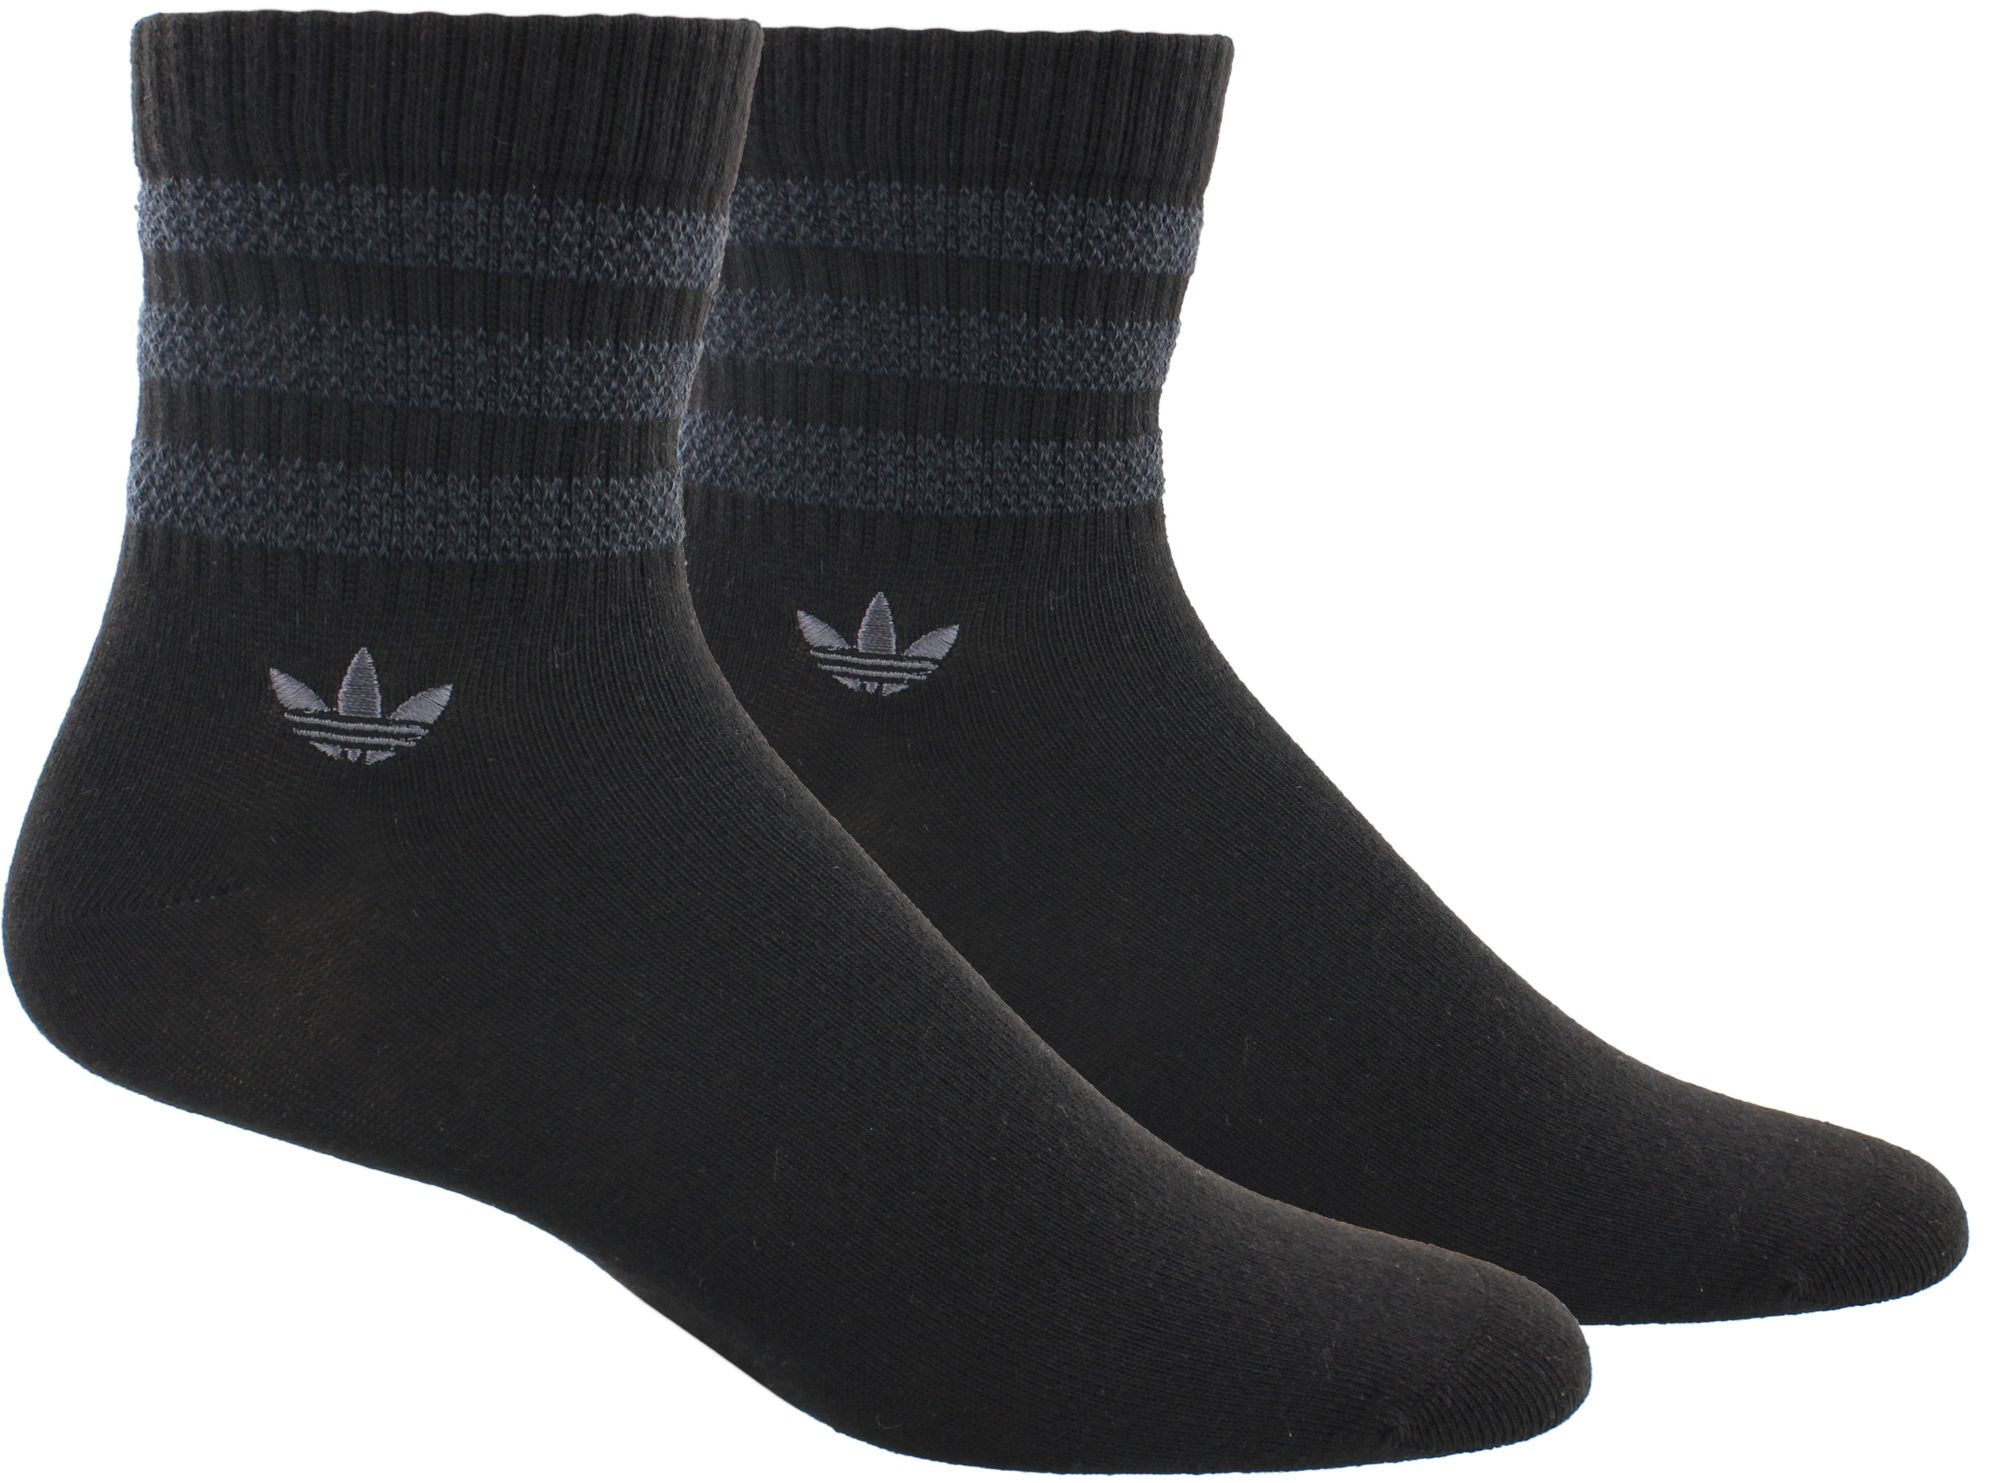 adidas quarter socks. adidas men\u0027s originals textured 3-stripe quarter socks 2 pack